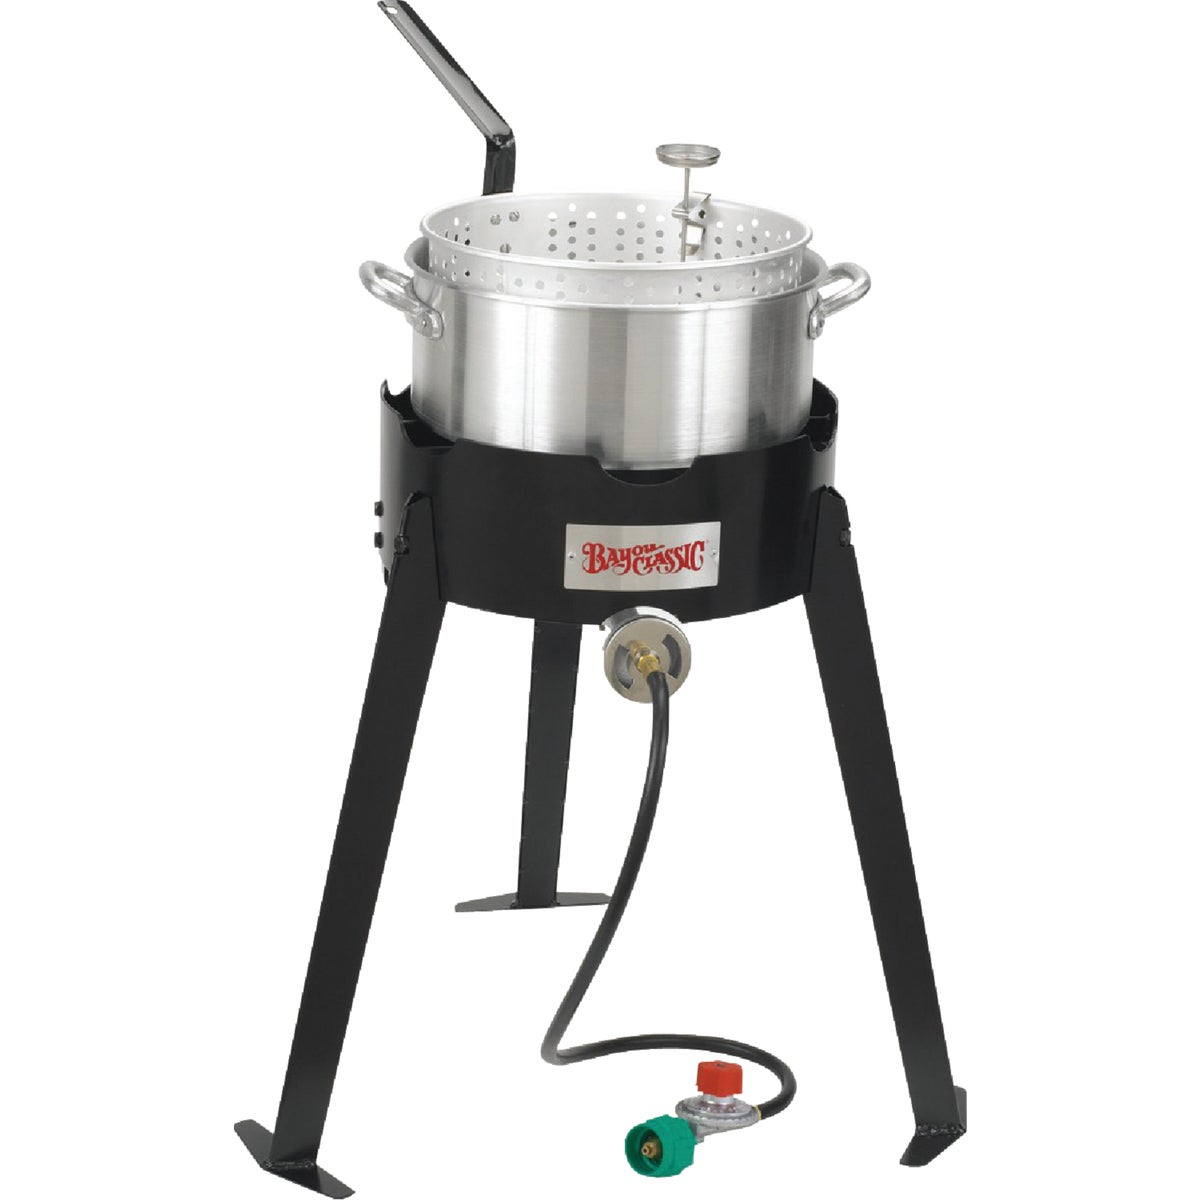 10QT ALUM FISH COOKER